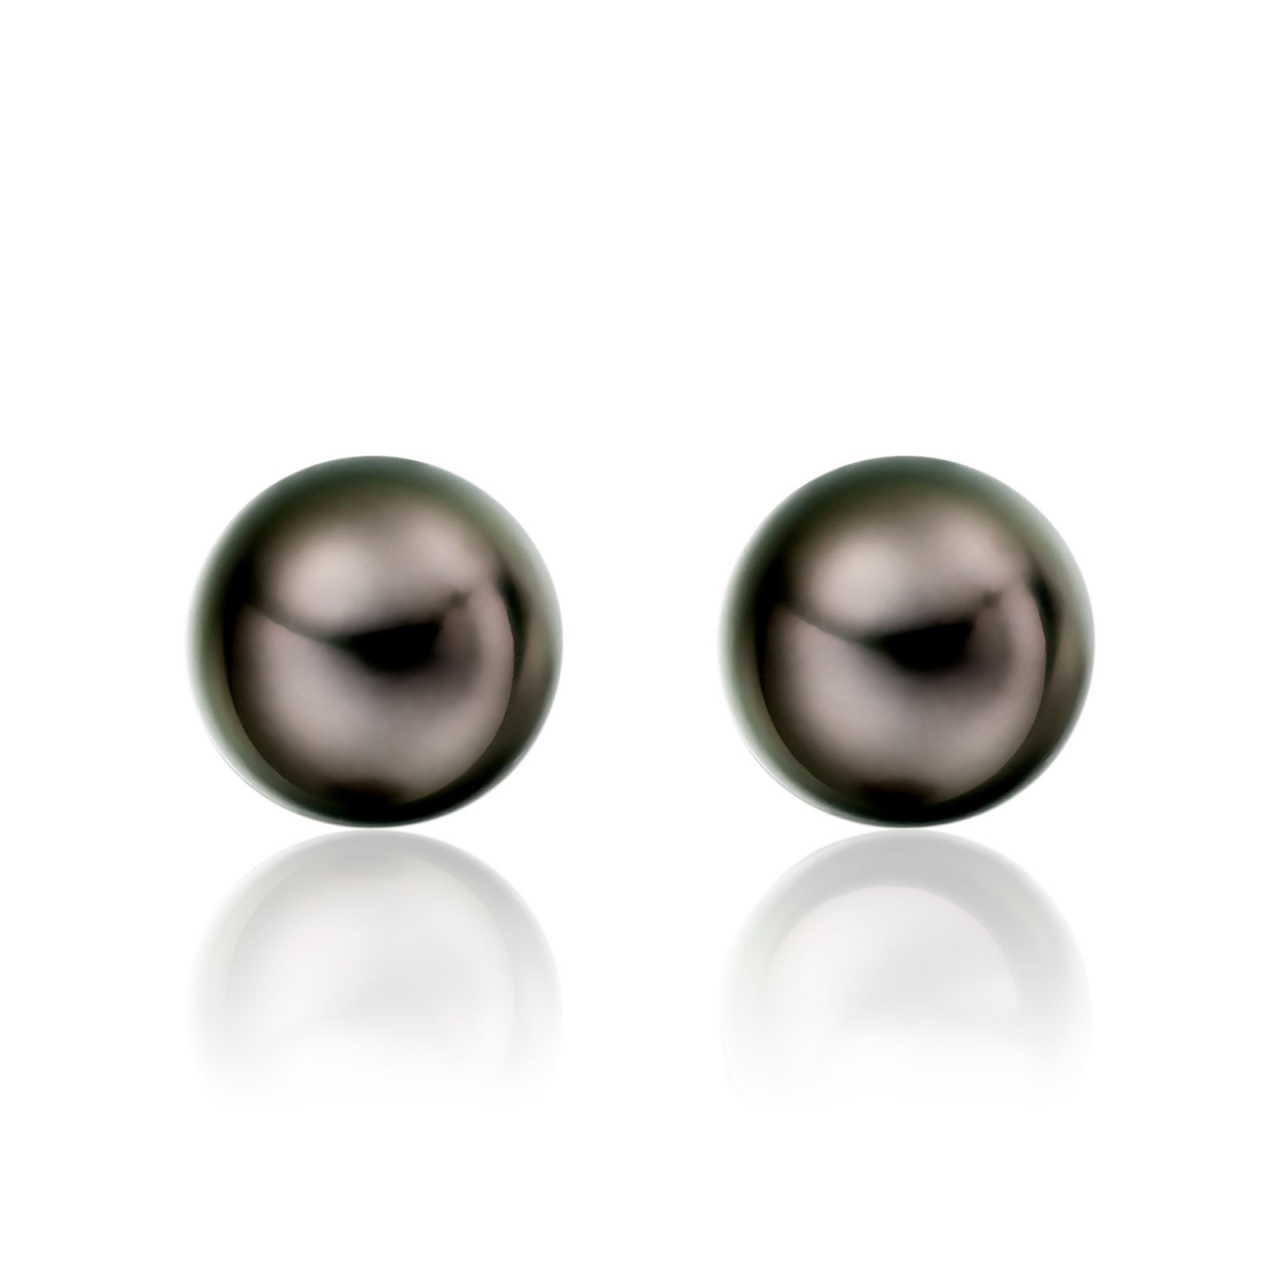 Tahitian Black Pearl Stud Earrings in 18 Carat Yellow Gold-1